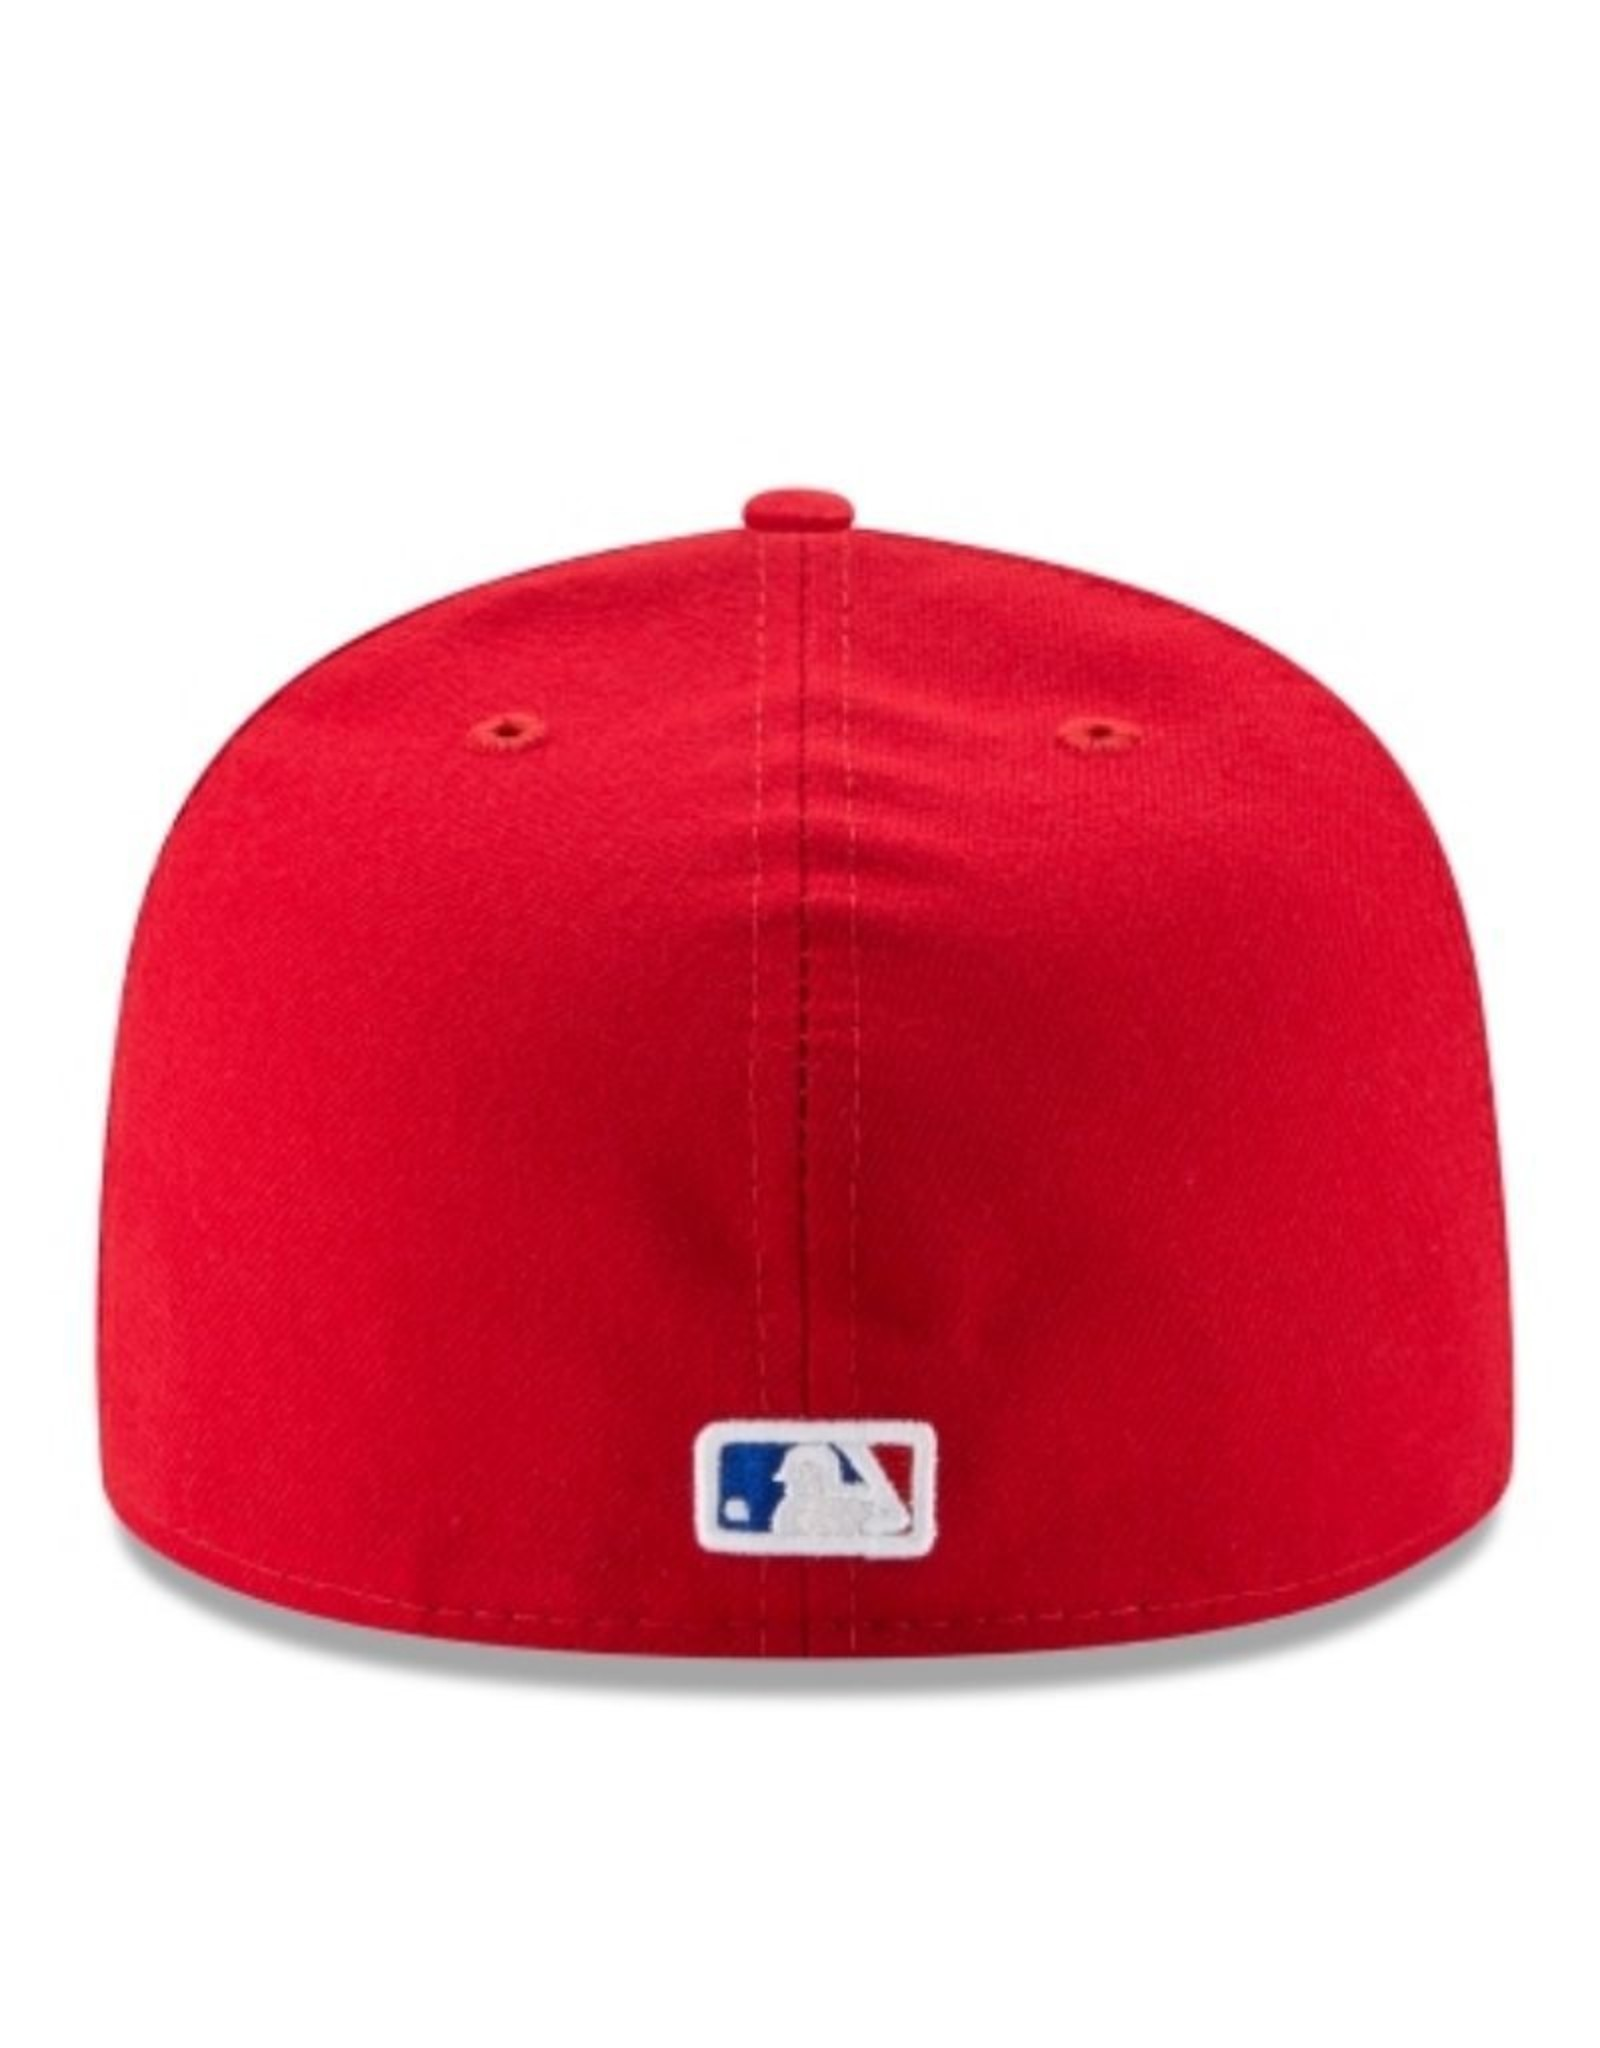 New Era On-Field Authentic 59FIFTY Alternate Hat Texas Rangers Red